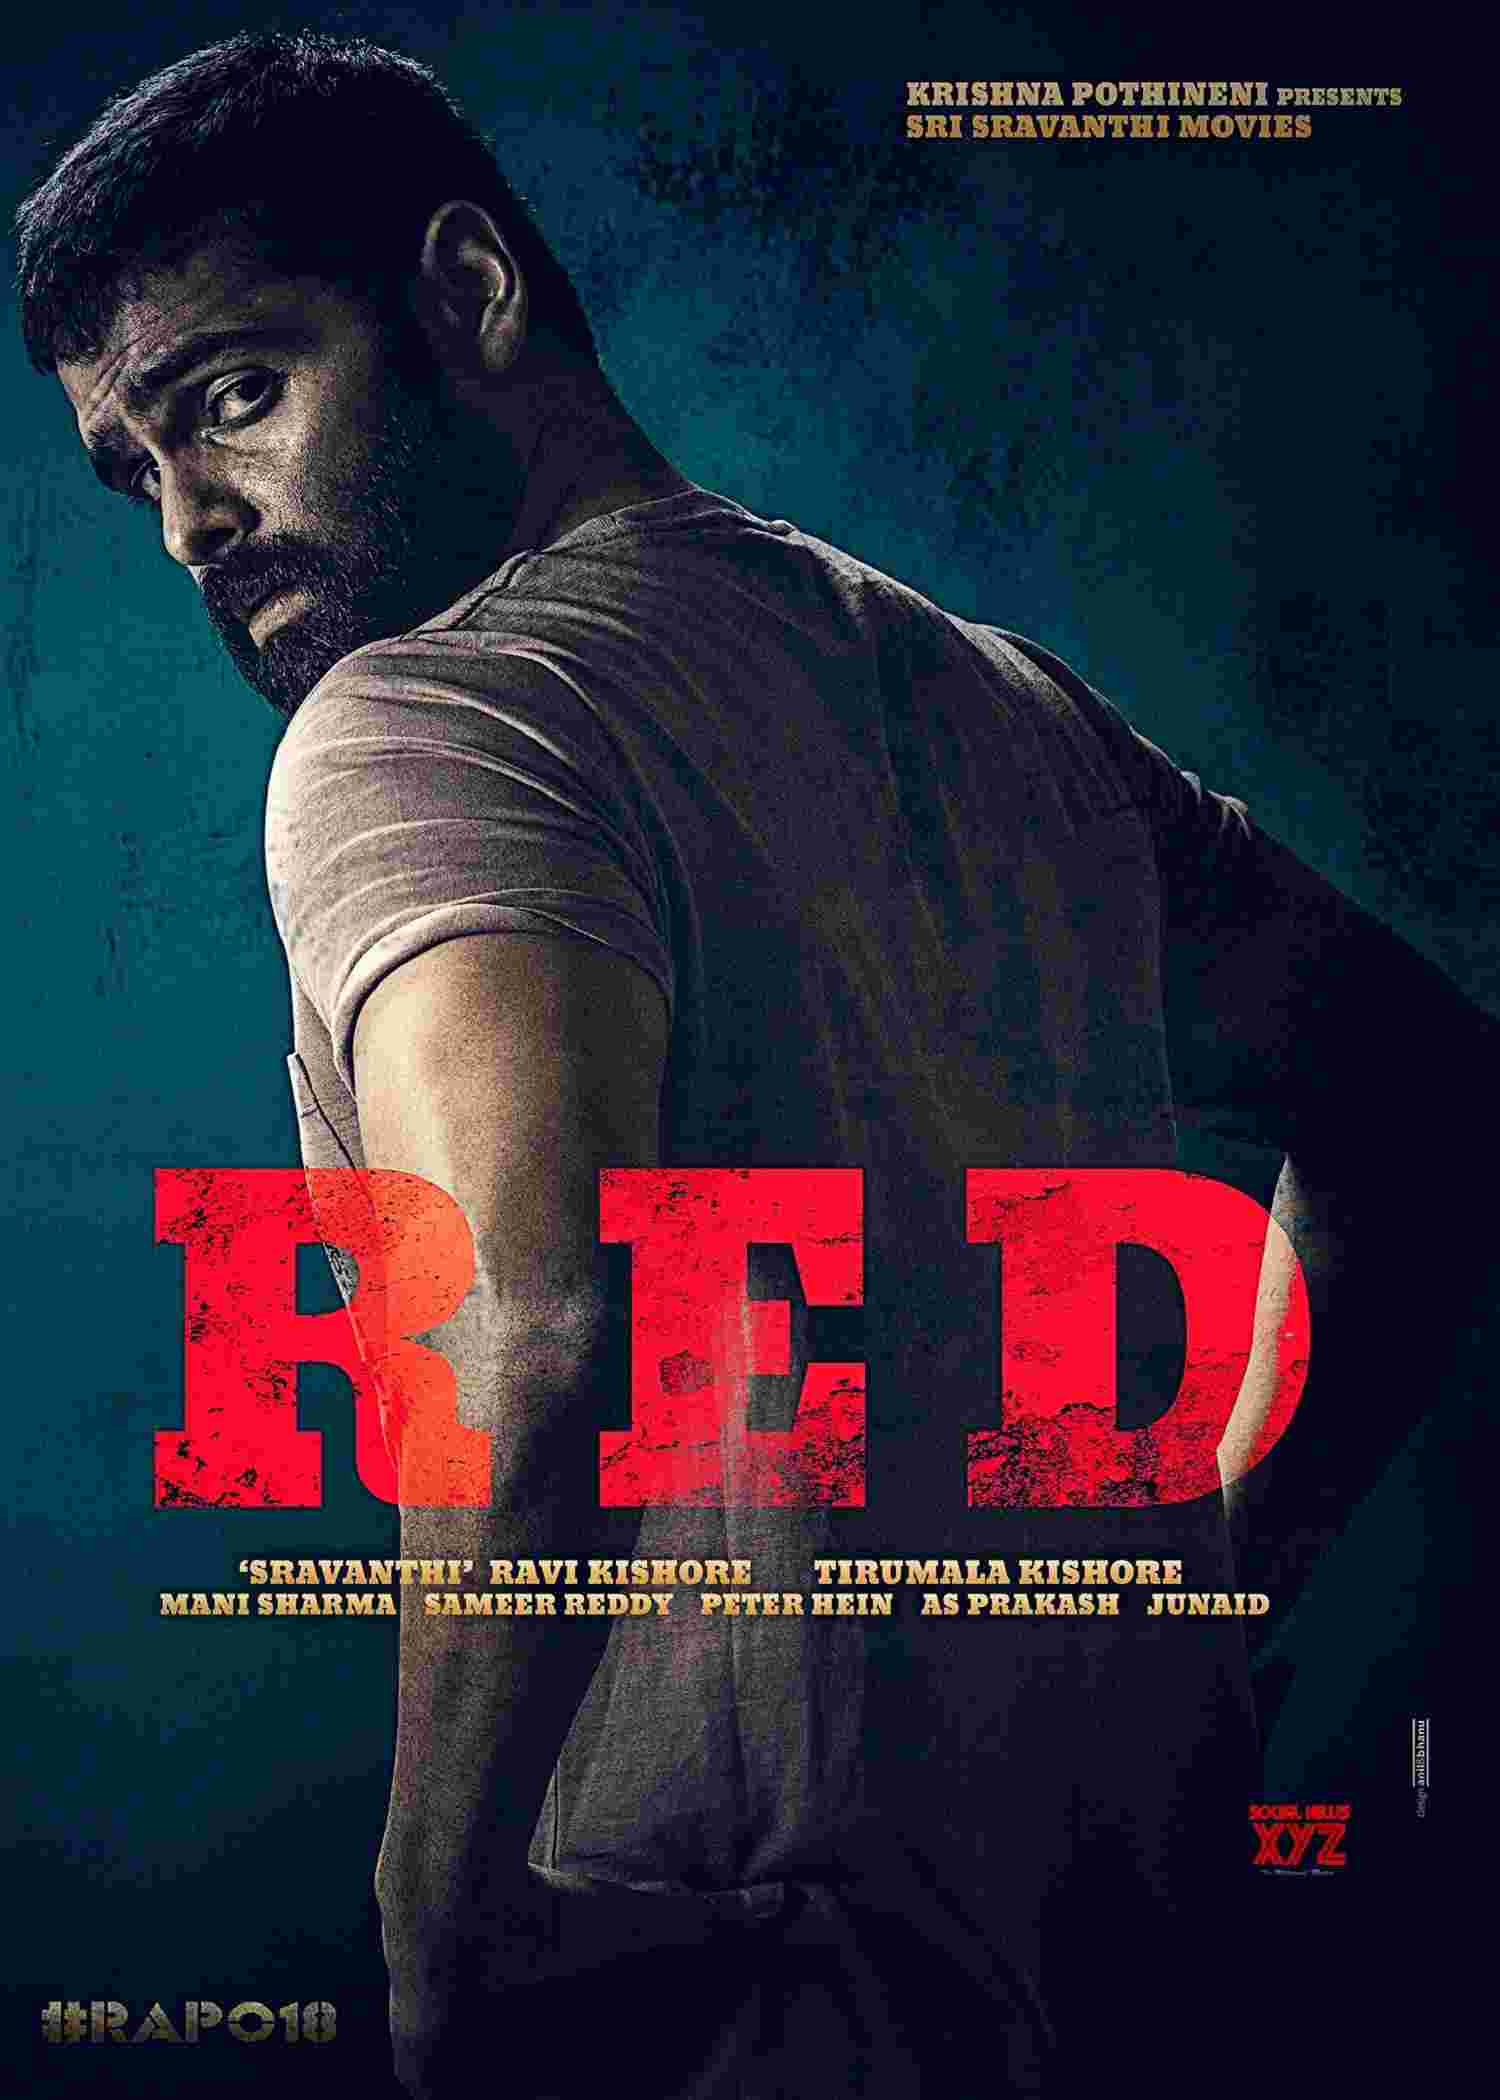 [Download] Red Full Movie Download Khatrimaza, [Download] Filmyzilla Red Full Movie Download, [Download] 9xflix Red Full Movie Download, [Download] Red Ram Pothineni Full Movie Download, [Download] Red Full Telugu Movie Download, [Download] Red Full Movie Download Filmywap, [Download] Red Movie Download Khatrimaza, [Download] Red Full Movie Download 2021, [Download] Red Movie Download in Hindi Filmywap, [Download] Red Movie Download in Hindi